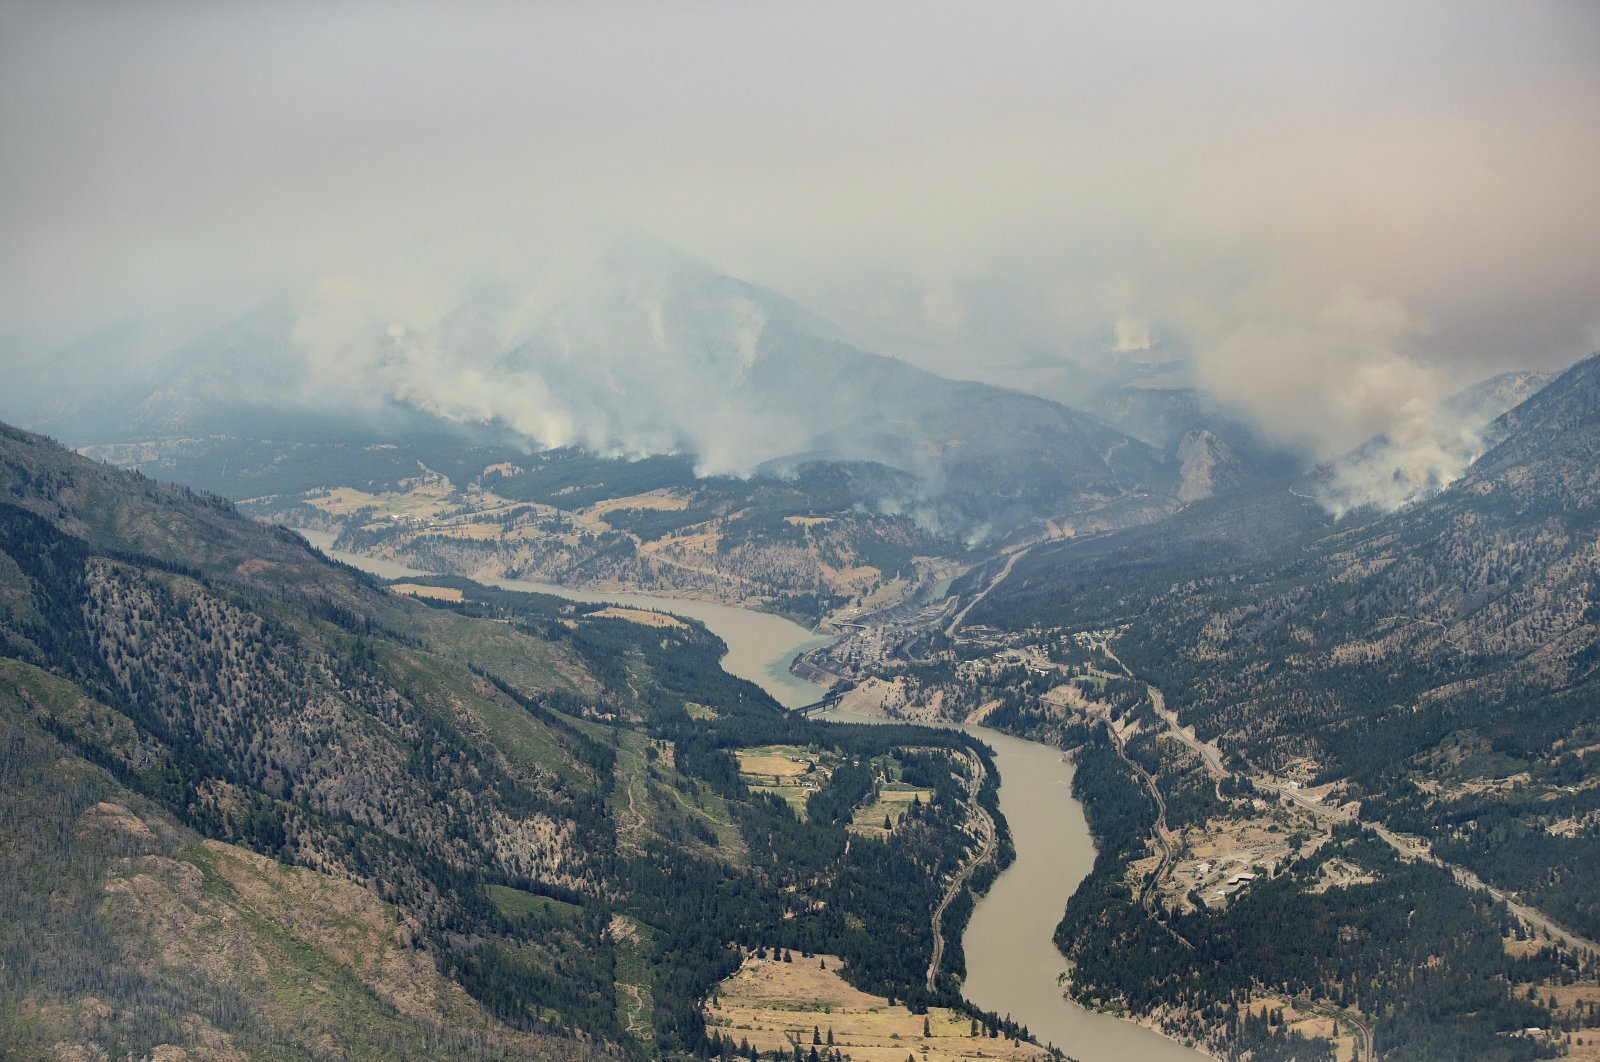 In this aerial photo taken from a helicopter, a wildfire burns in the mountains north of Lytton, British Columbia, July 1, 2021. (The Canadian Press via AP)